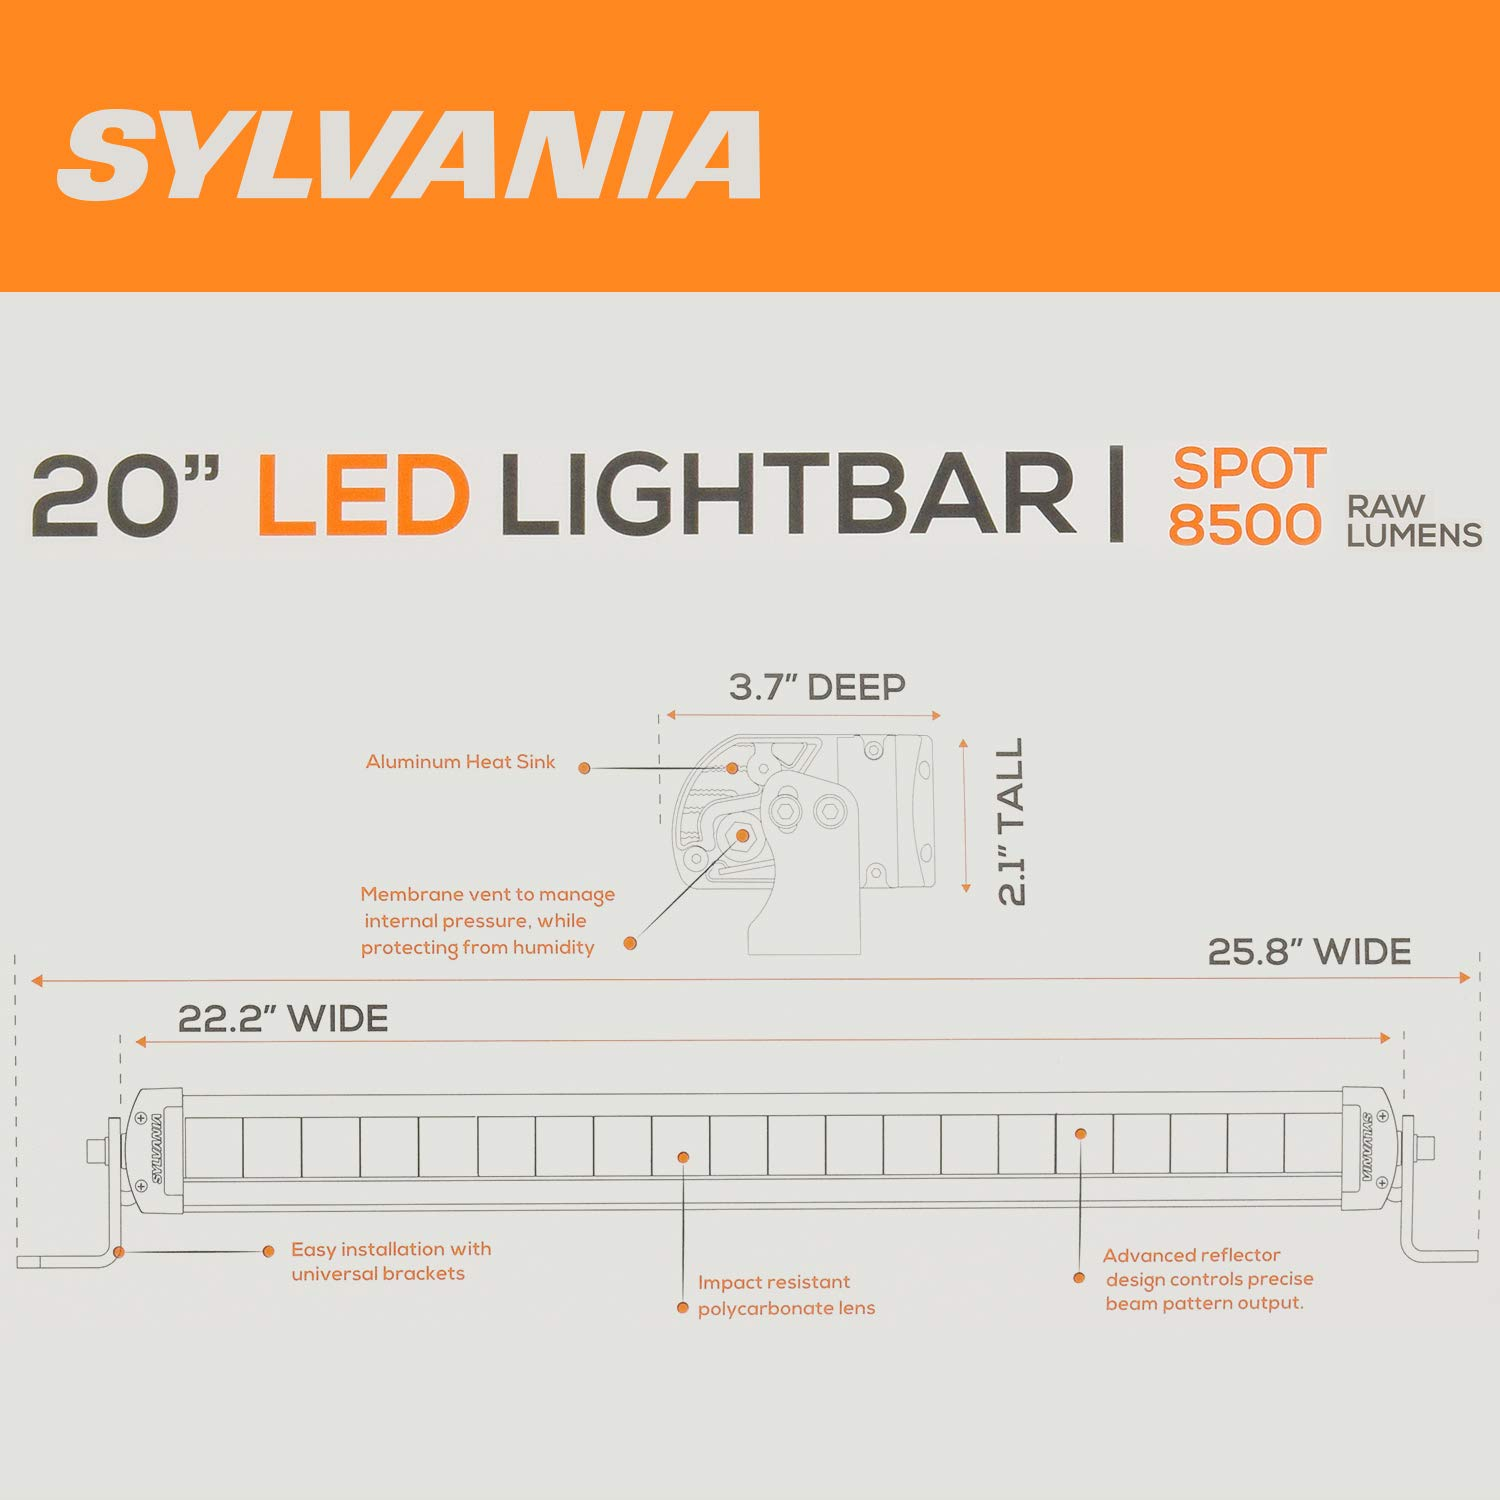 Sylvania 20 Inch Led Off Road Light Bar 72 Usable Wiring Diagram For Watts 8500 Raw Lumens 5 Degree Spot Beam Design Car Truck Jeep Boat Atv Suv